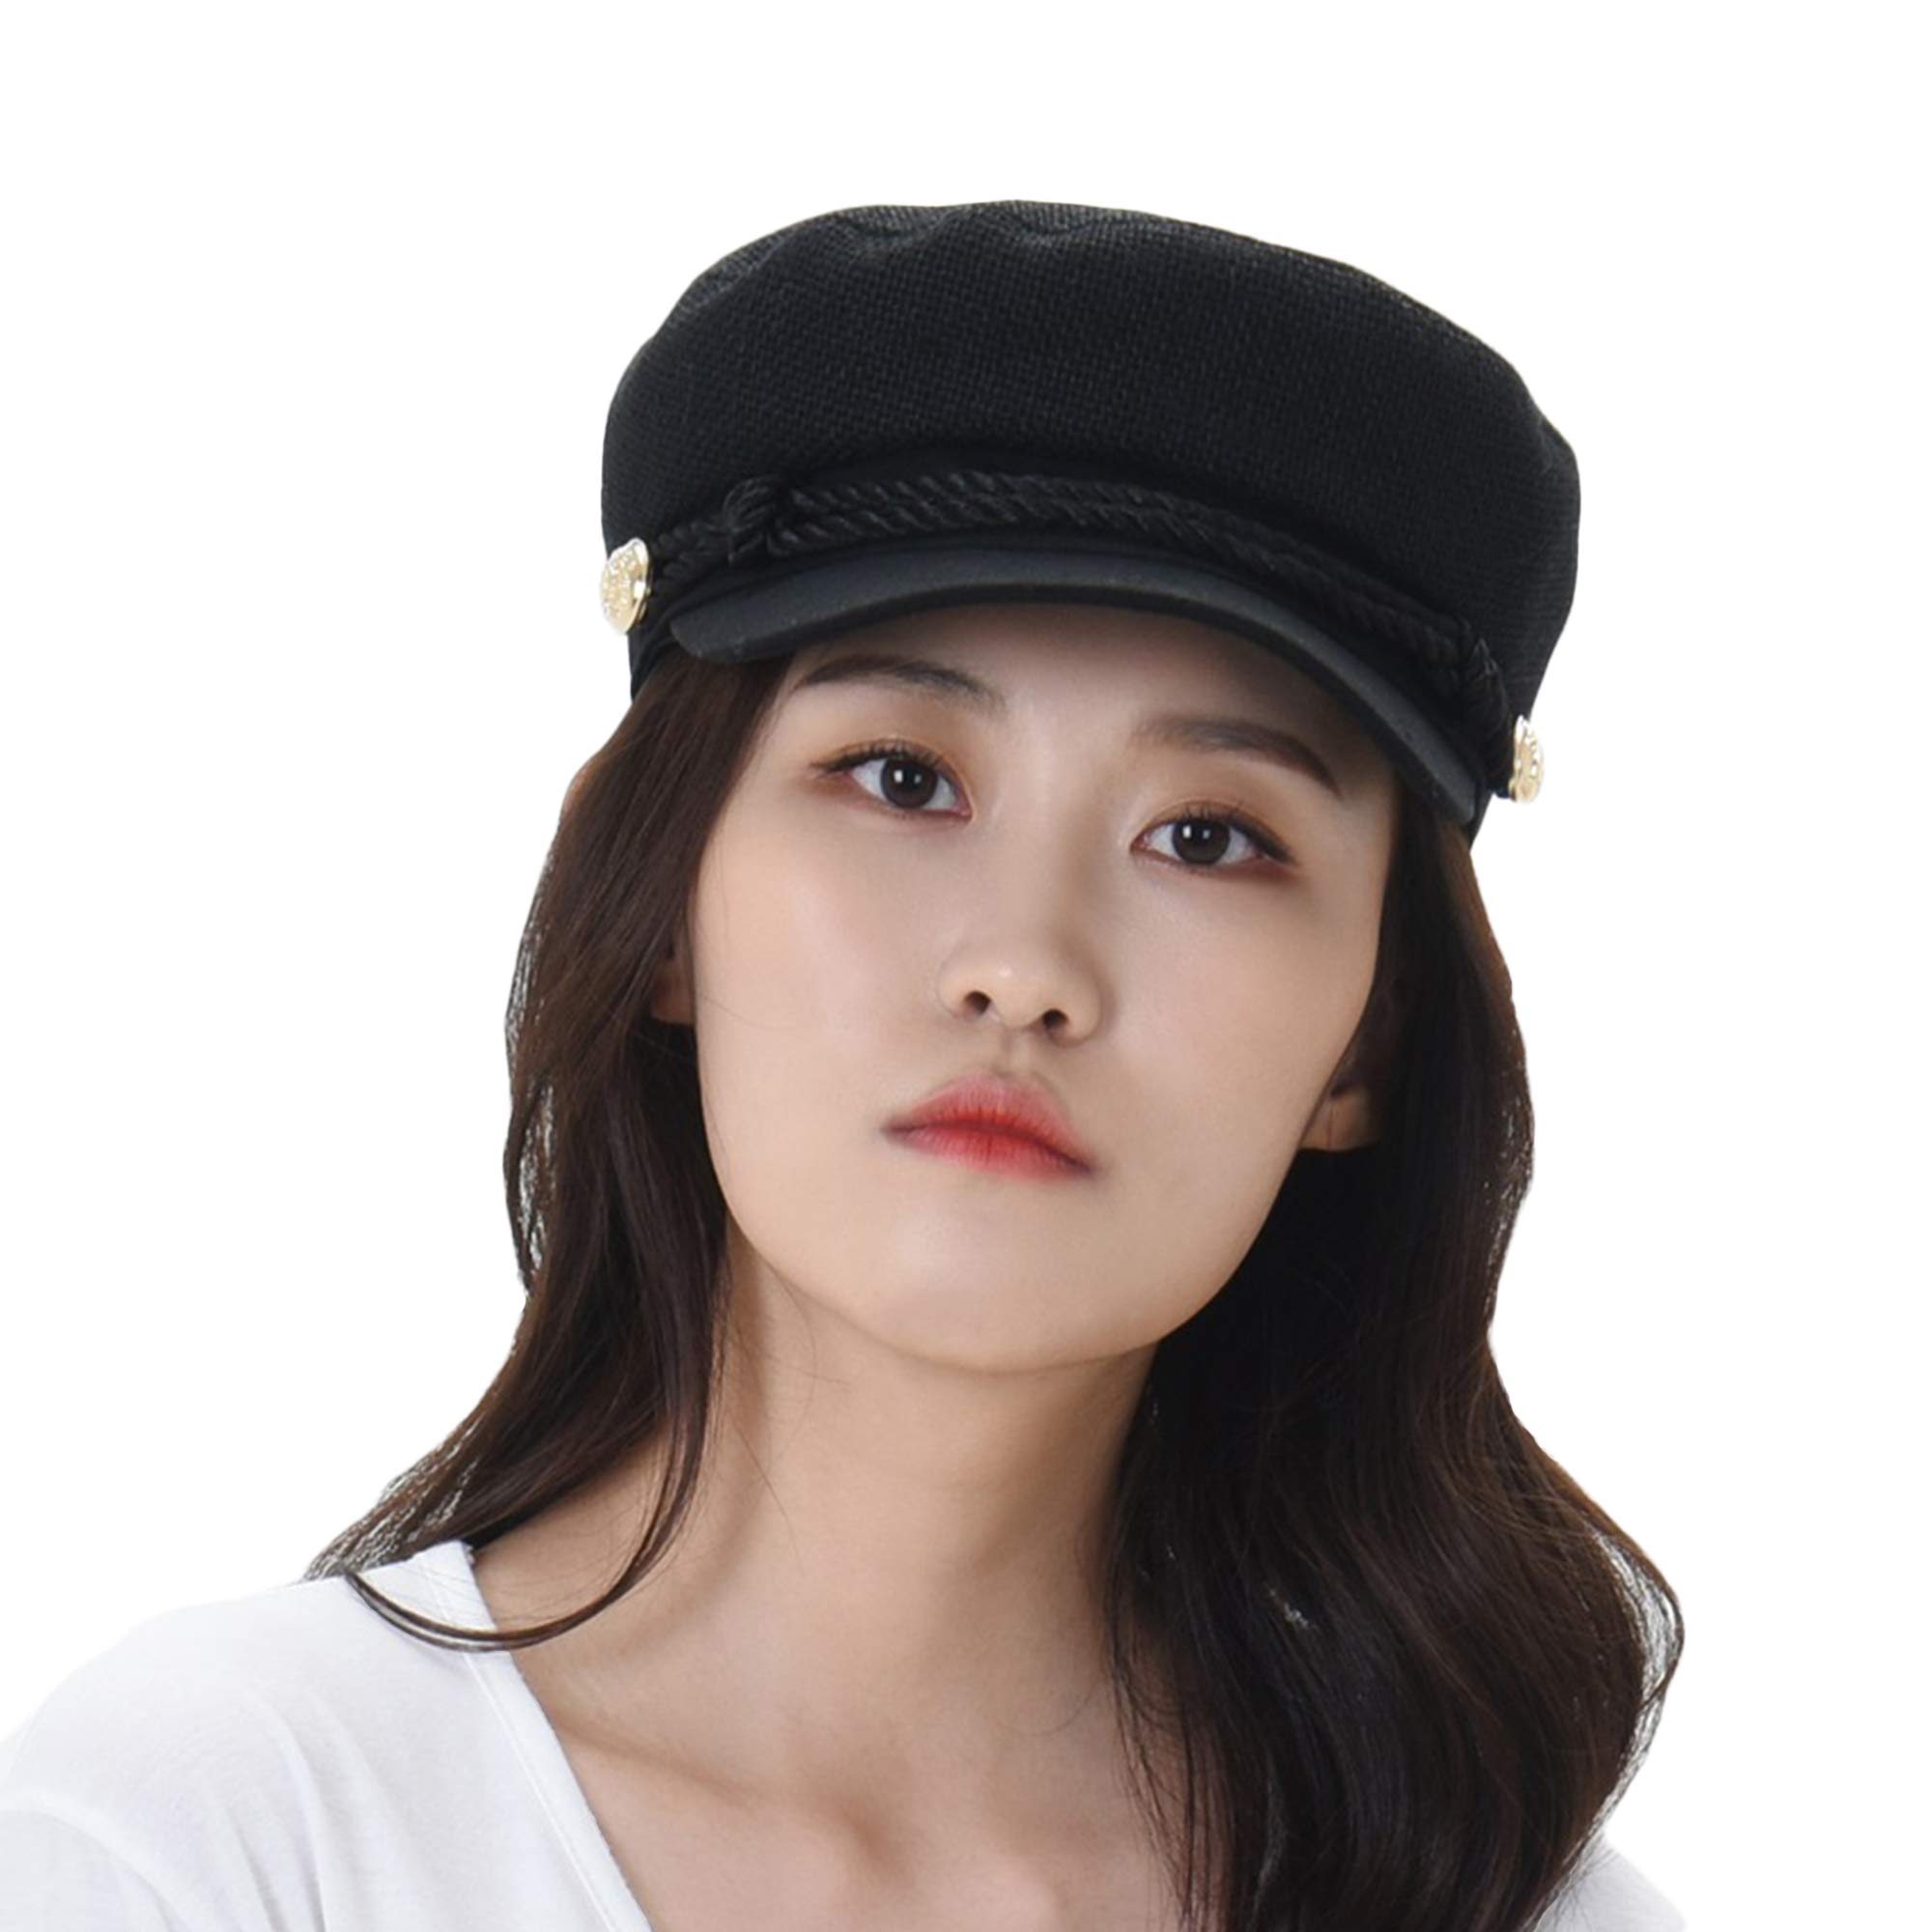 WITHMOONS Women Linen Newsboy Cap Mesh Breathable Summer Hat MUG1164 (Black) by WITHMOONS (Image #1)